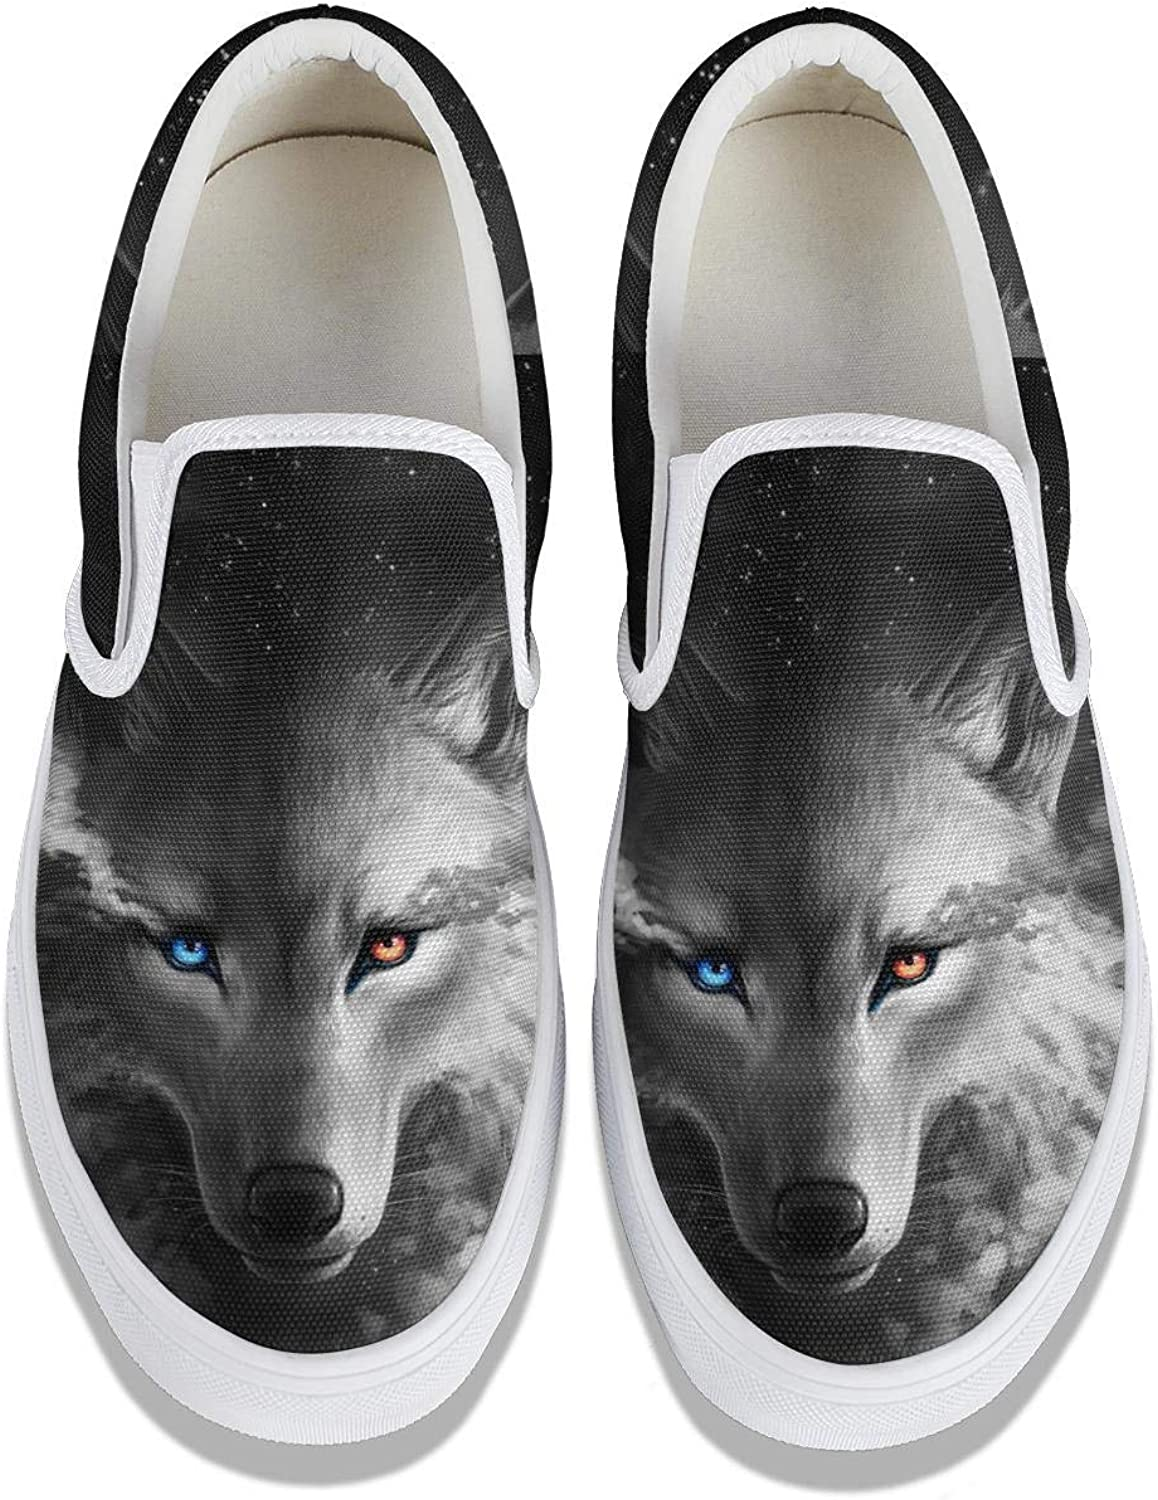 Skate Womens Canvas Shoes Wolf in Blue Fire 3D Print Sneakers for Women Loafers Rubber Sole Slip Ons